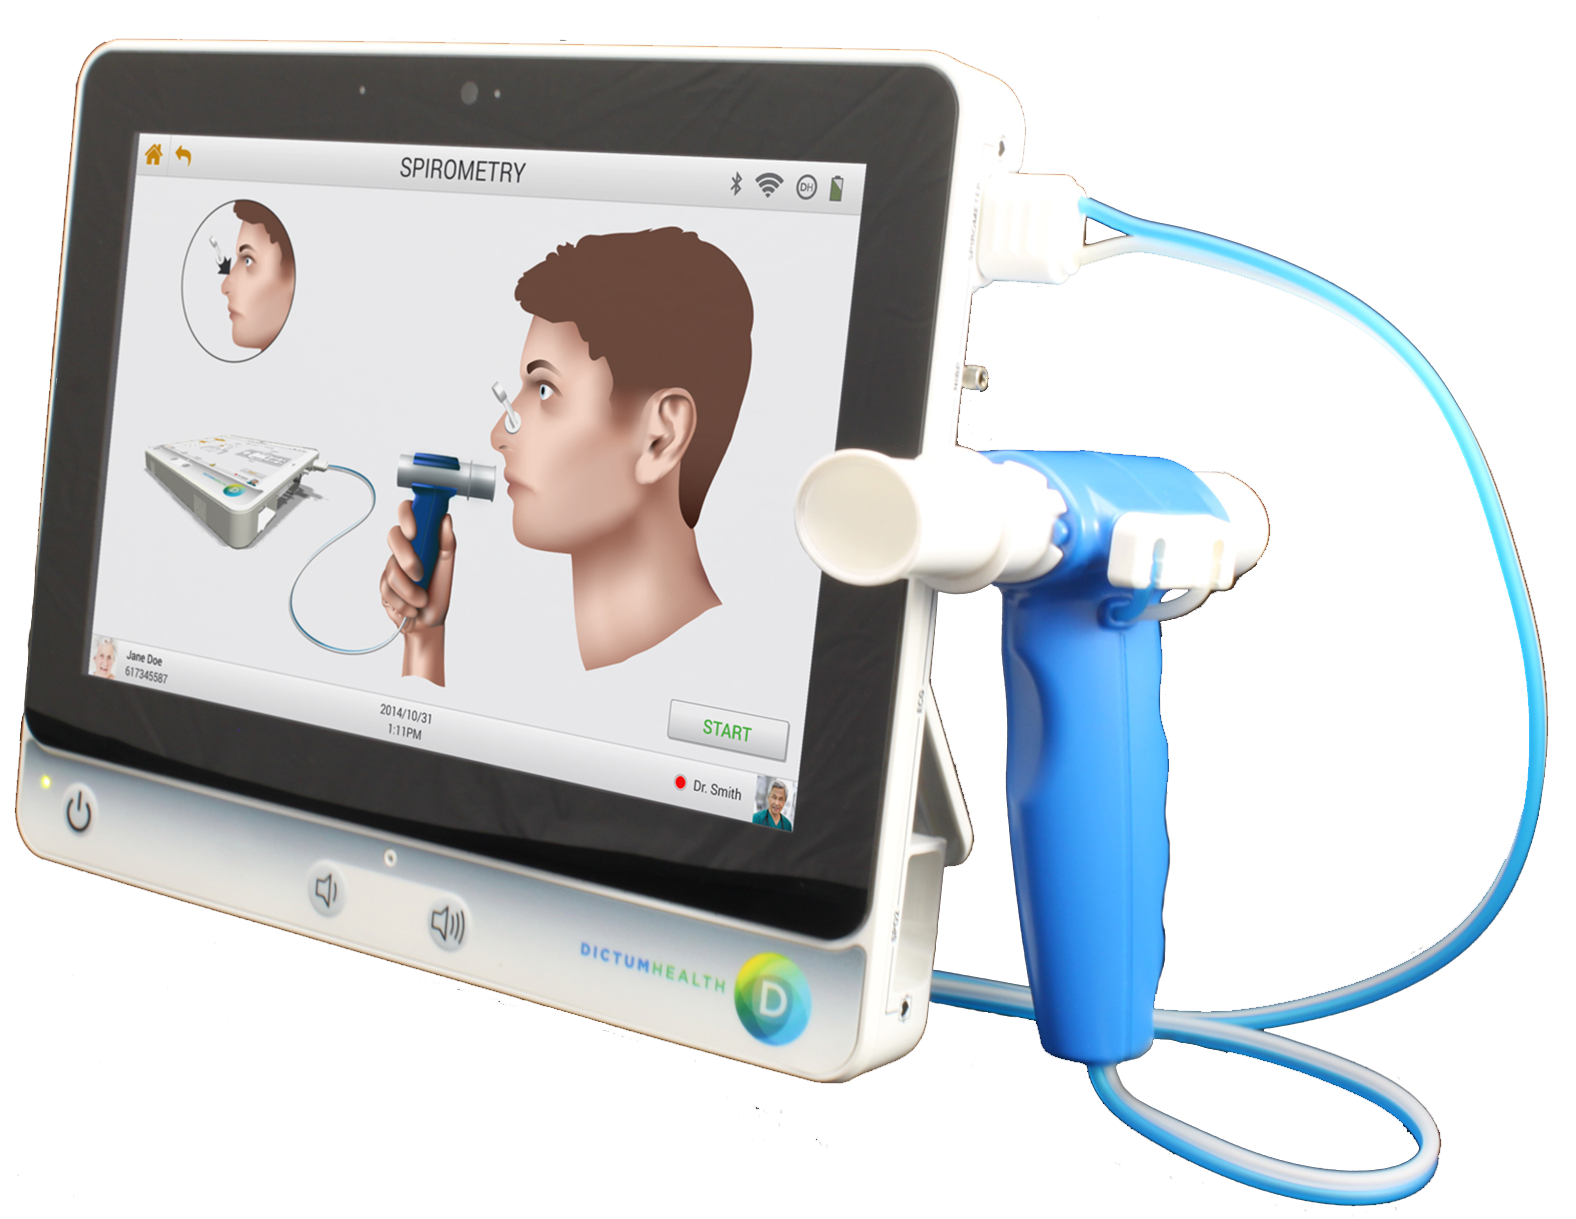 Dictum Health Receives FDA 510K Clearance for Portable Spirometry